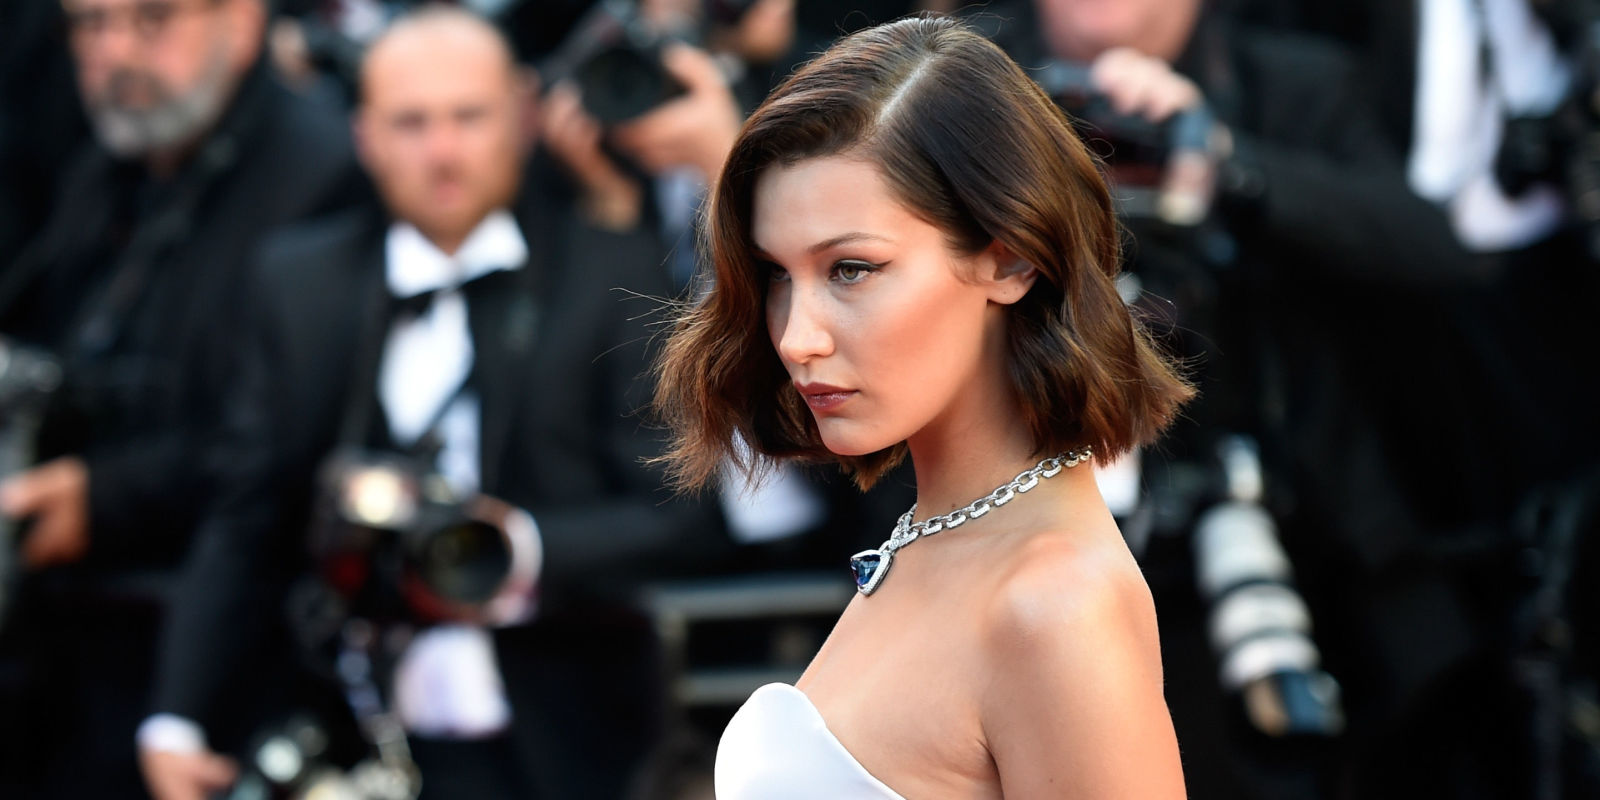 Bella Hadid Is Not Afraid of Any Wardrobe Malfunction